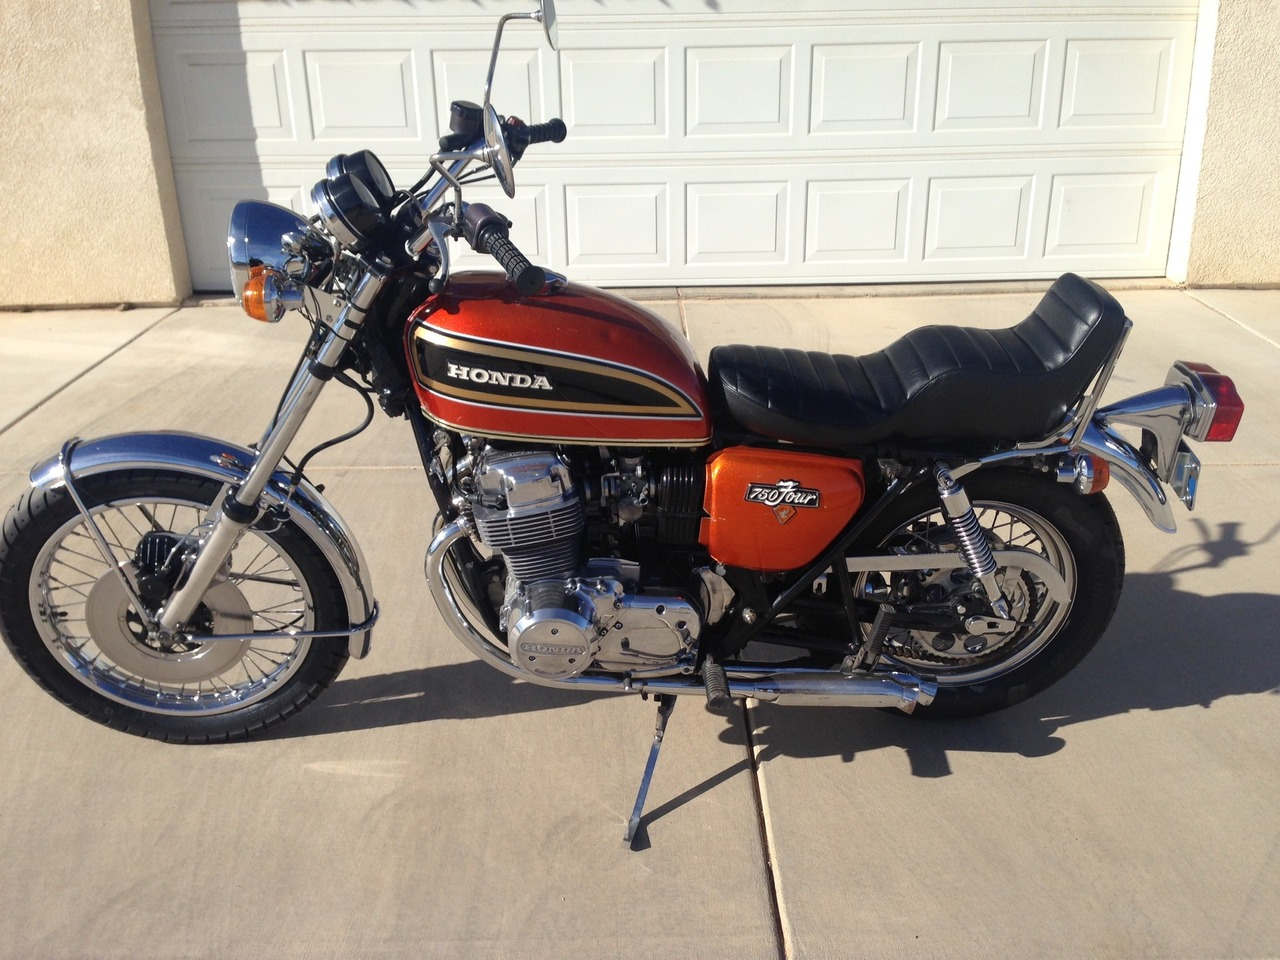 Honda Cb Motorcycles For Sale on Used Honda Motorcycle Engines